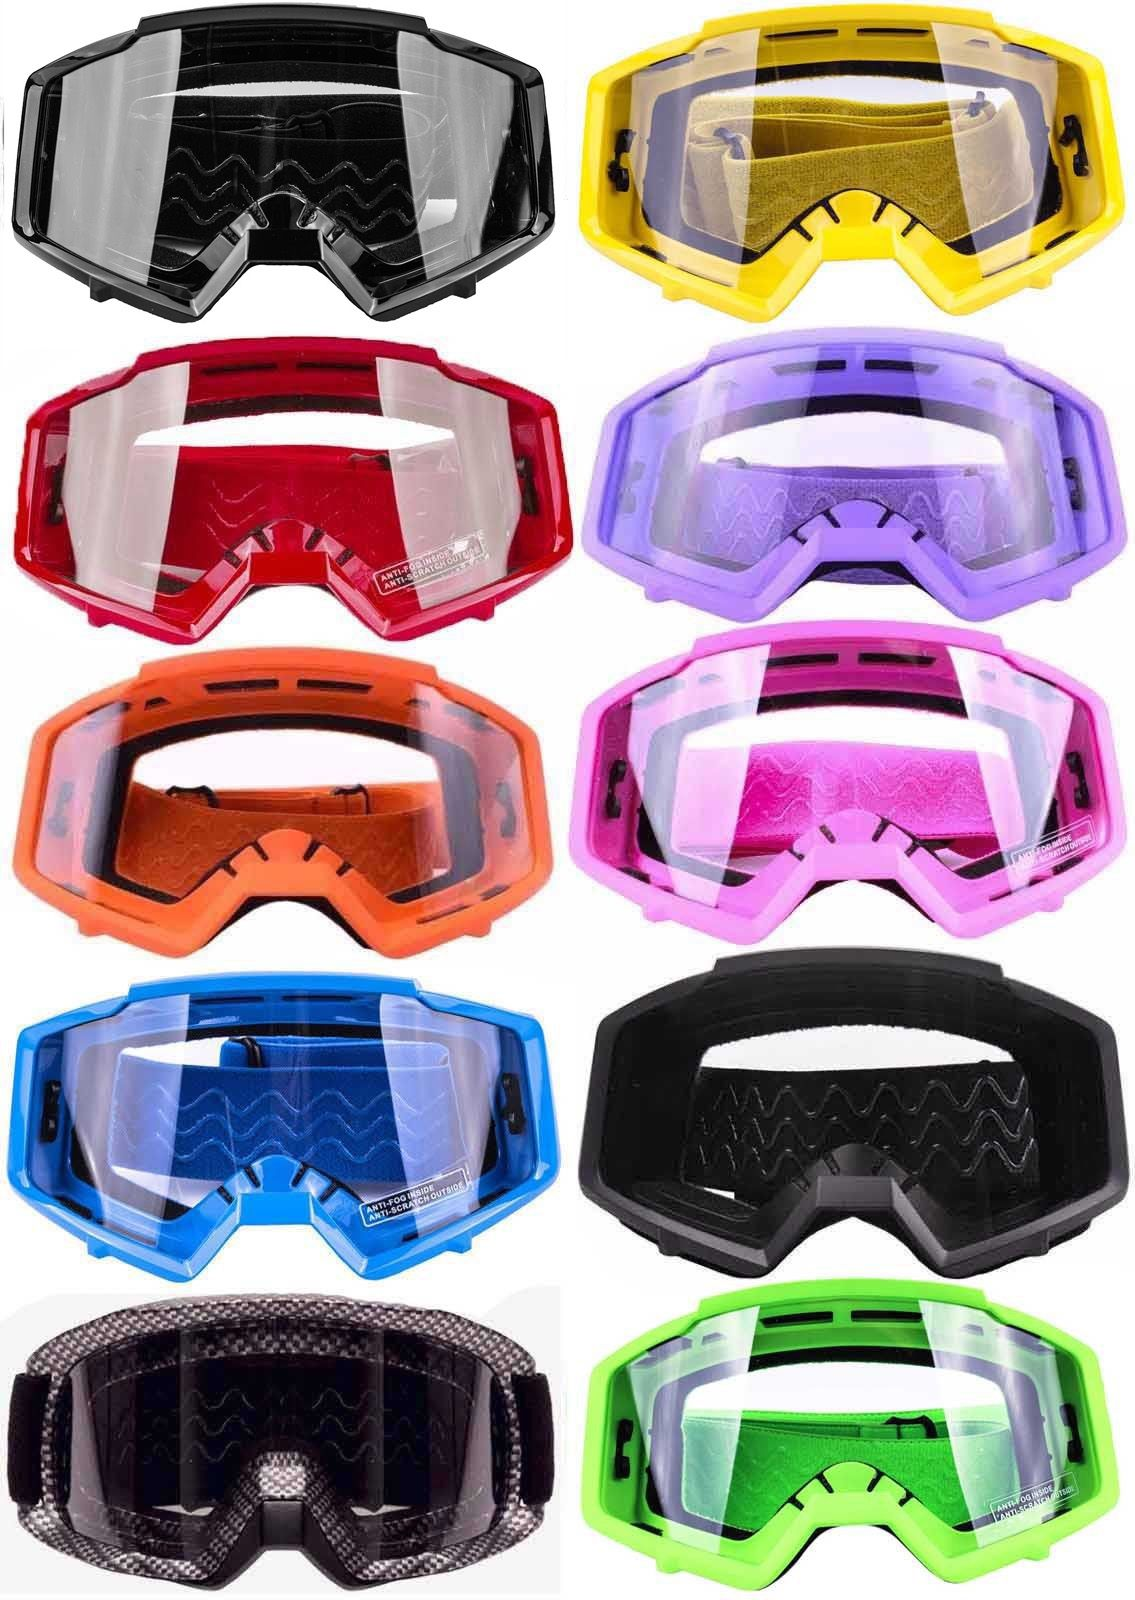 Motocross Motorcycle ATV MX Adult Fog Dirt Bike Off-Road Helmets Goggle Eyewear